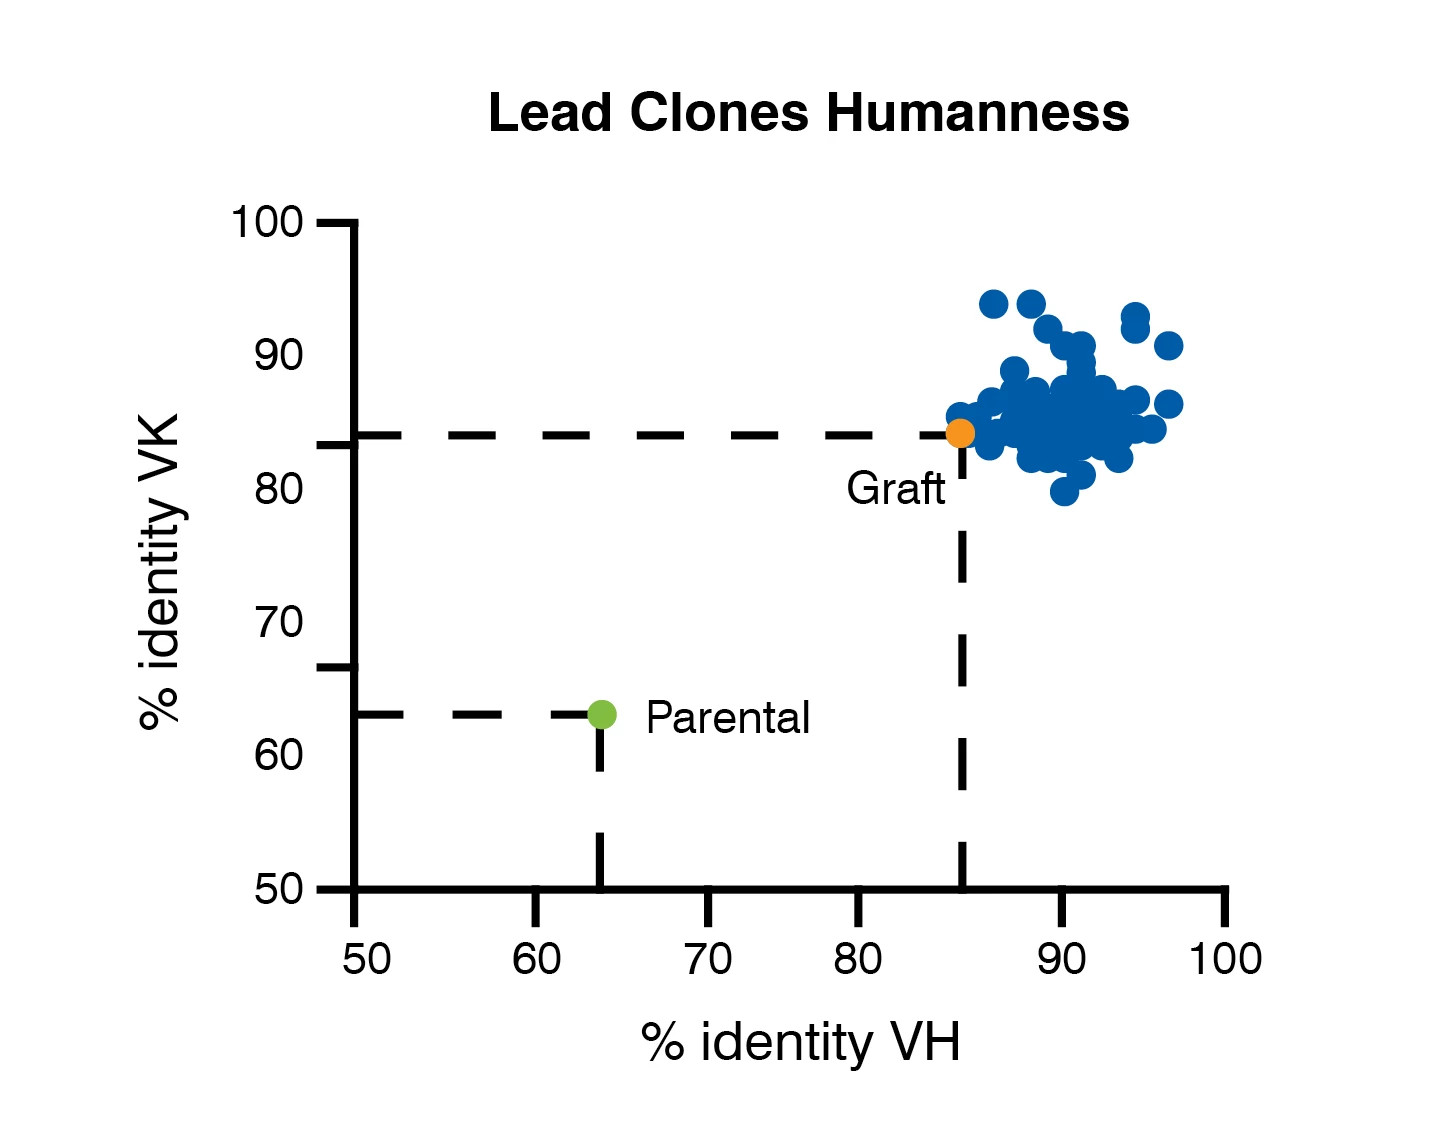 Tumbler humanized antibody technology produces identical replicas of human antibodies and far exceeds chimeric CDR grafting.